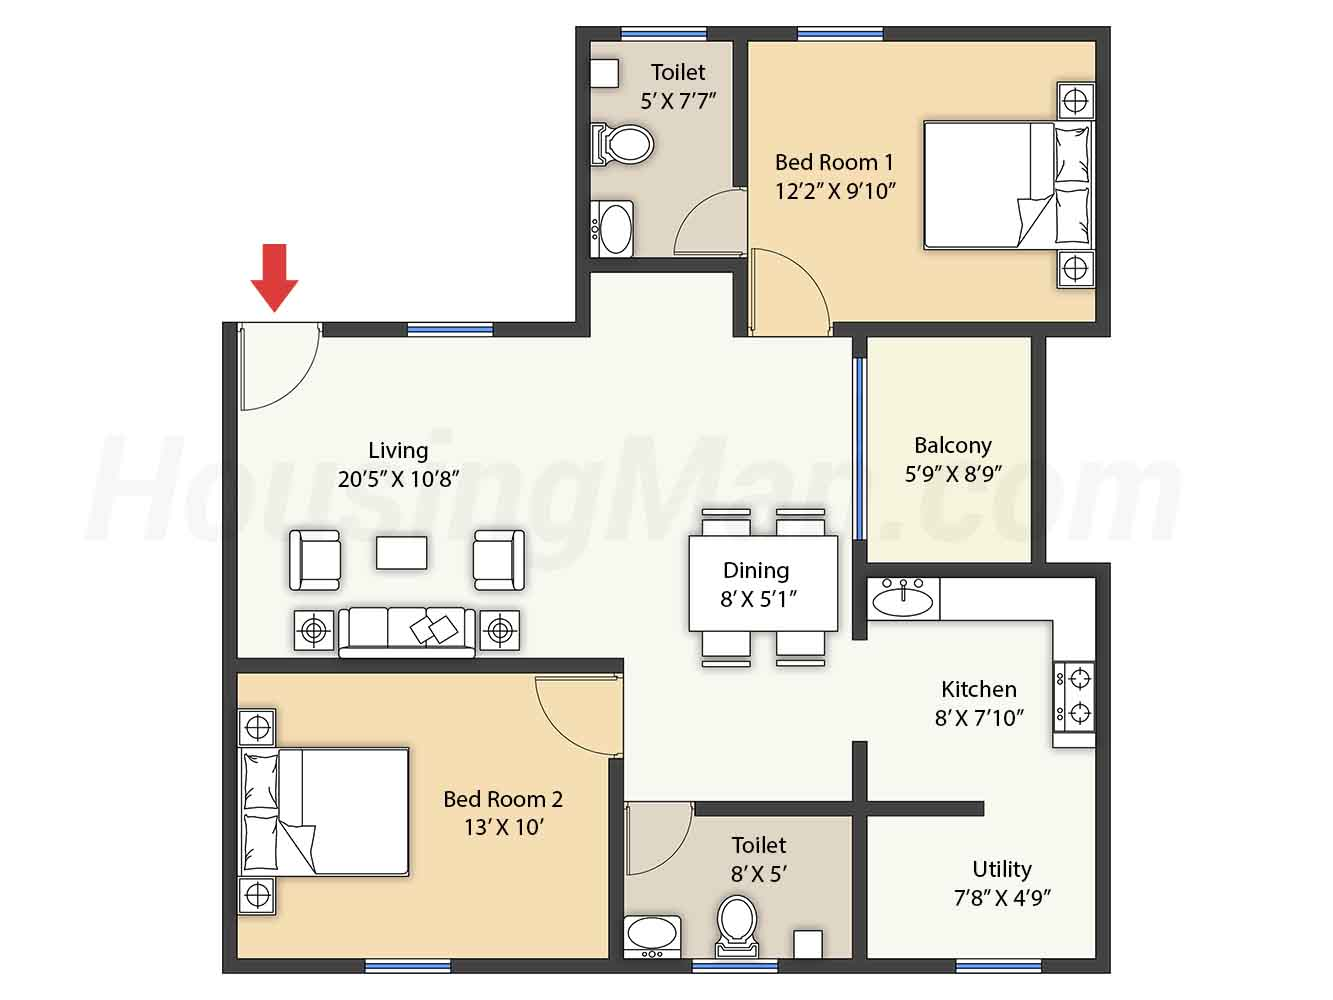 2bhk 2t 1005 t